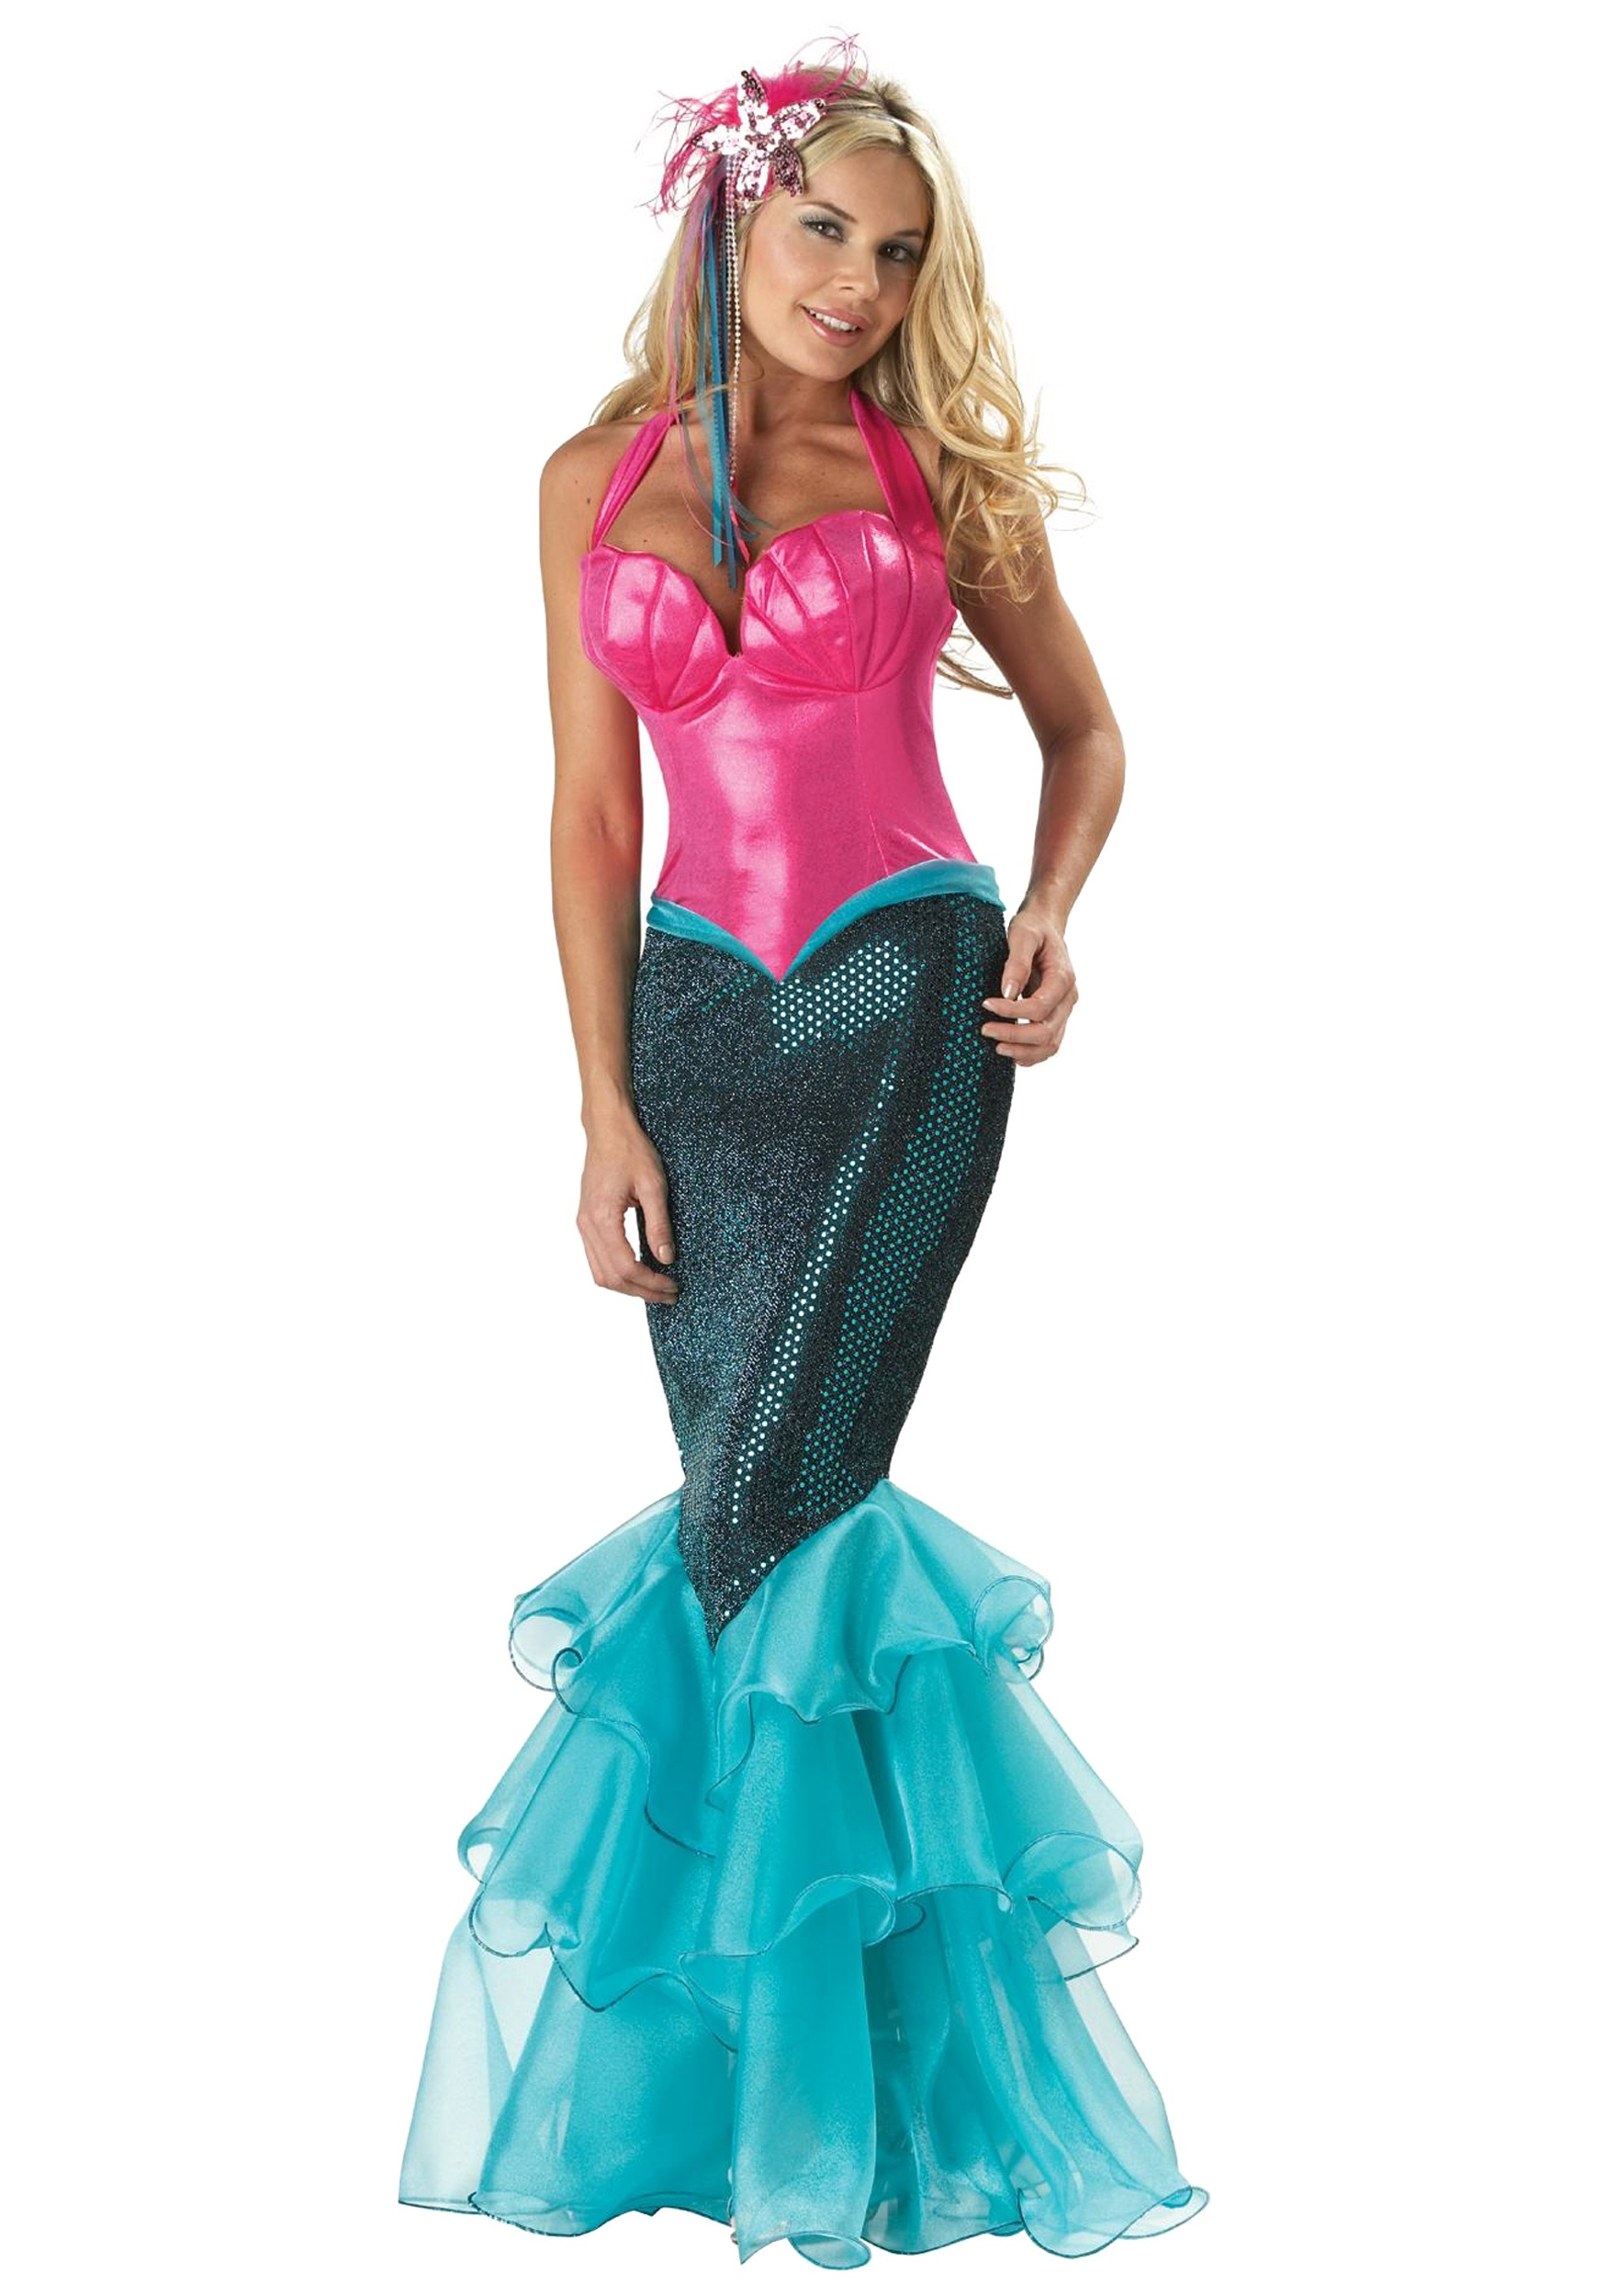 http://images.halloweencostumes.com/elite-mermaid-costume-zoom.jpg